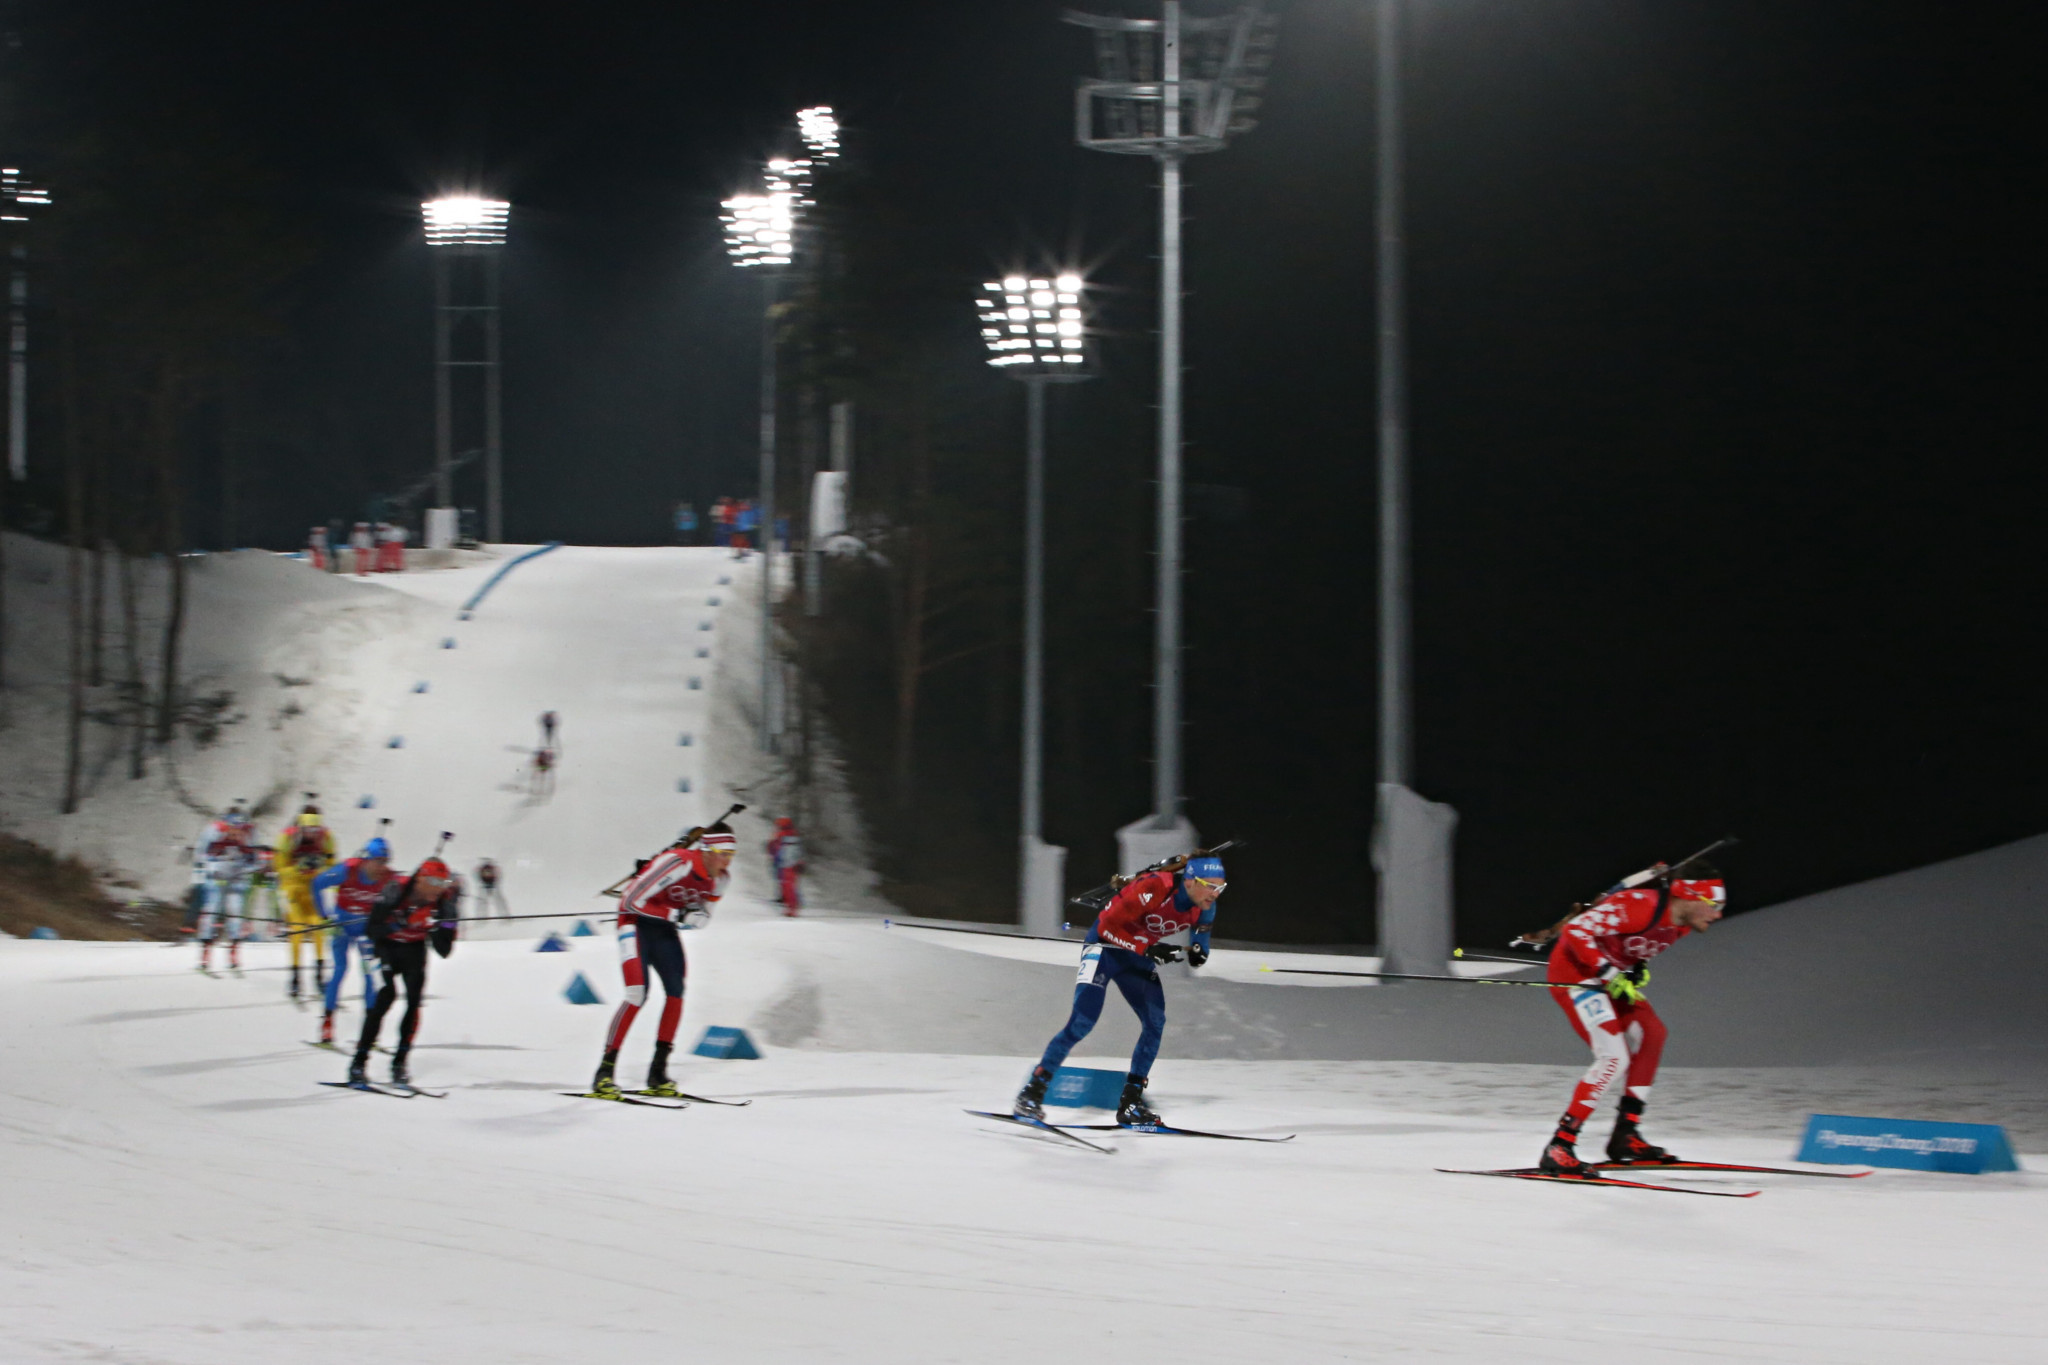 Pyeongchang 2018: Day 14 of competition